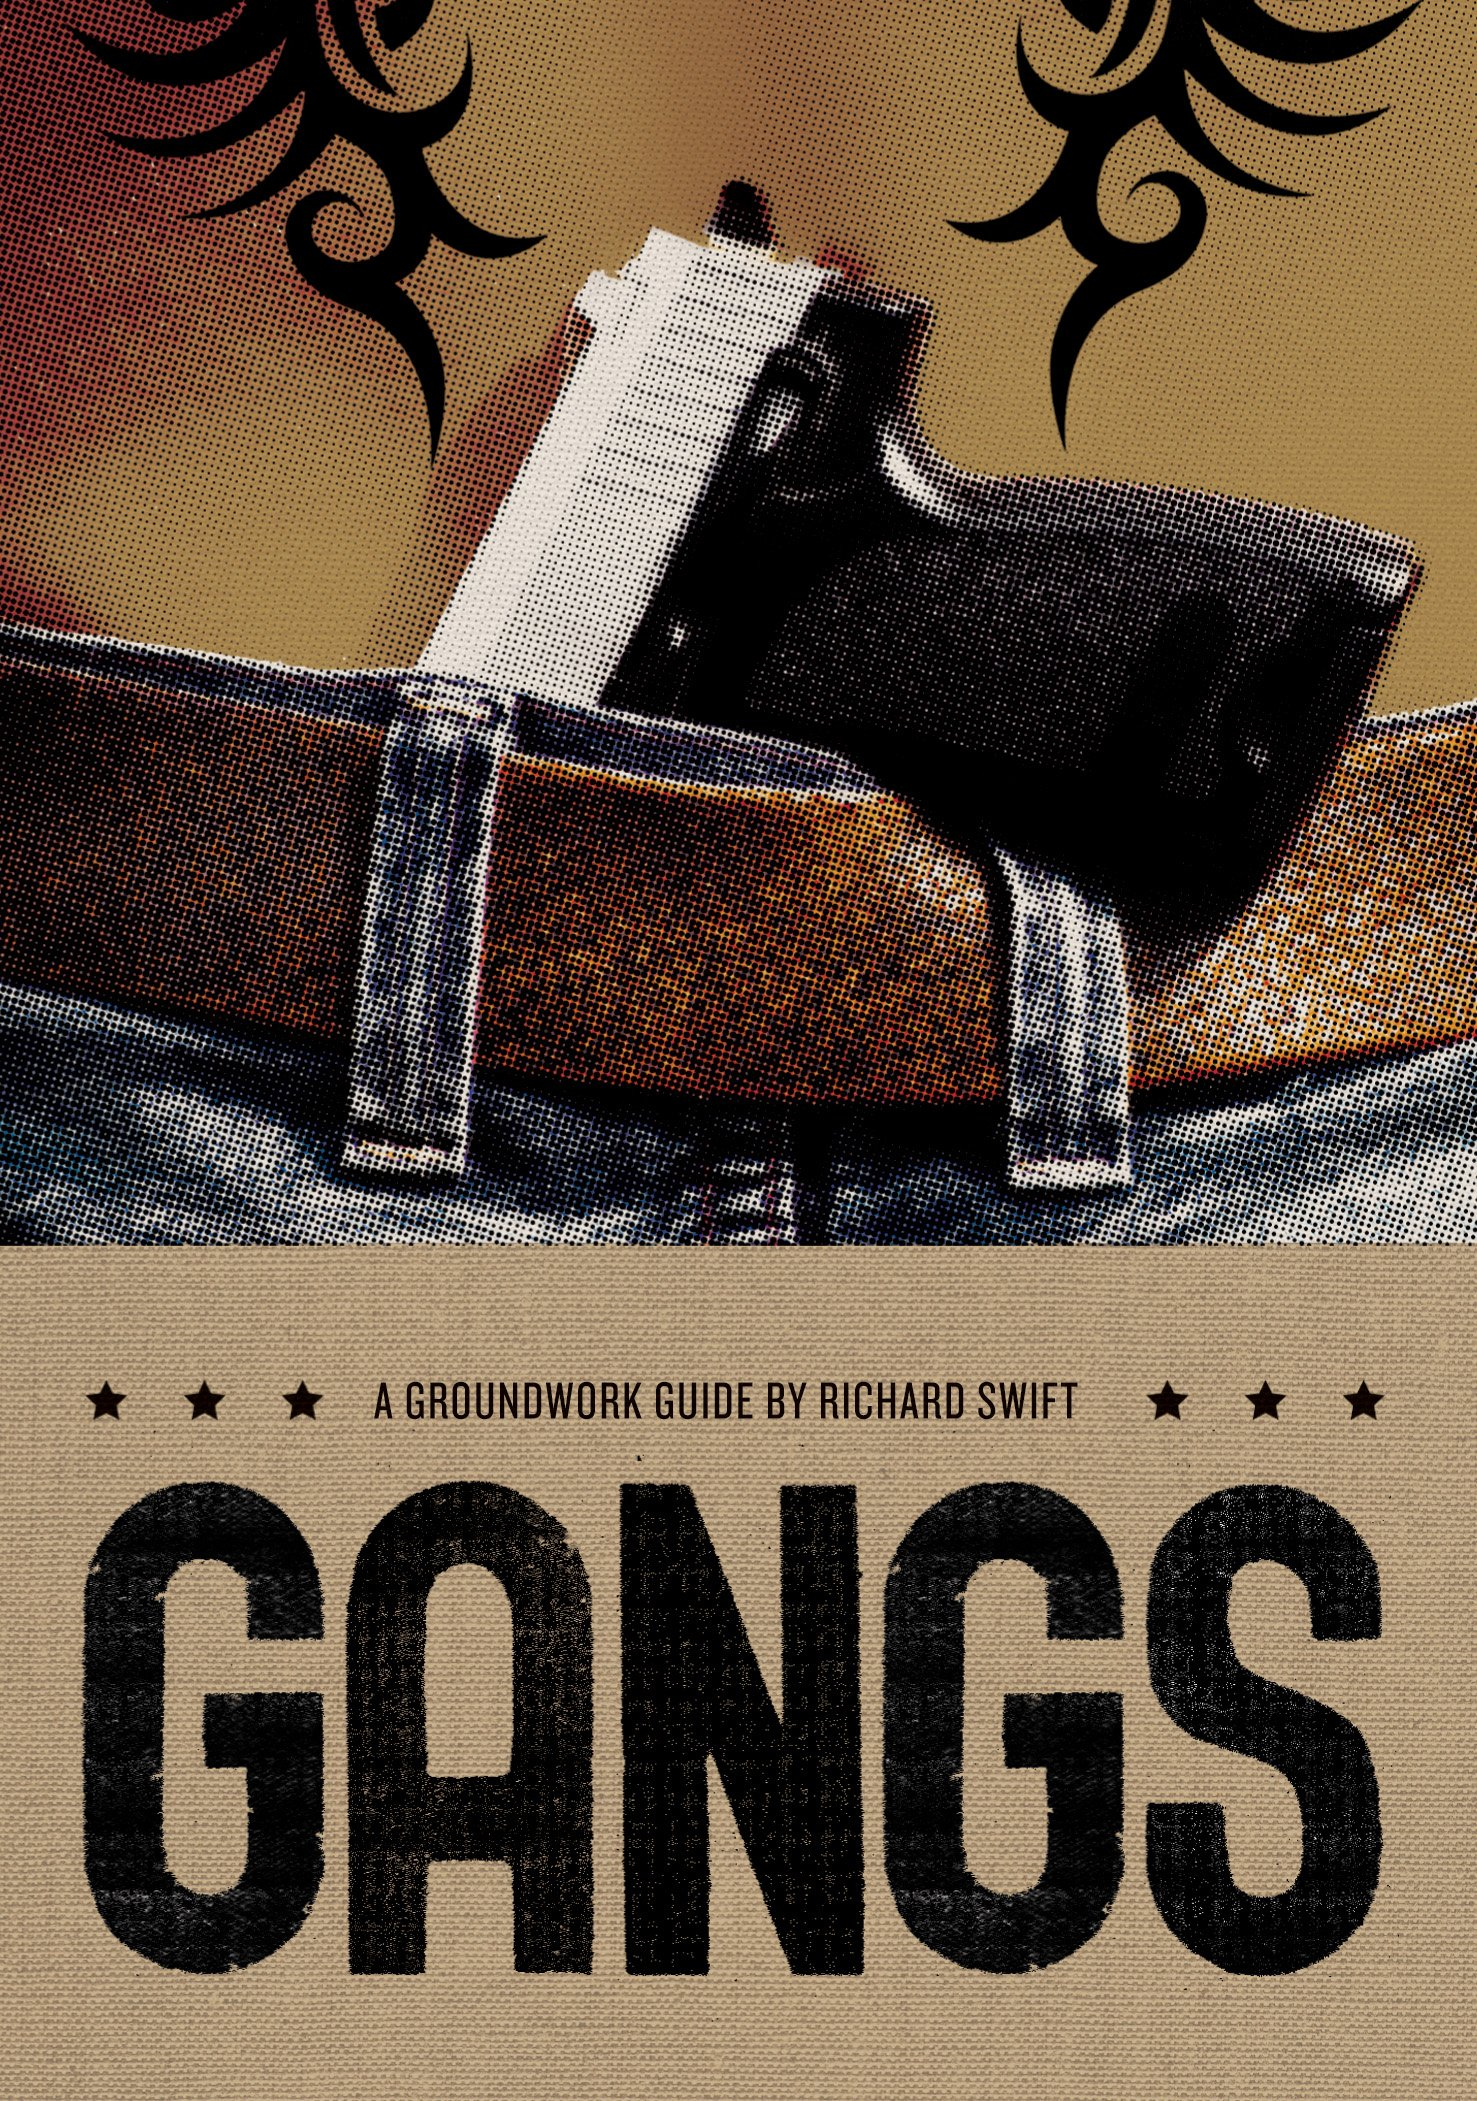 Gangs (Groundwork Guides) pdf